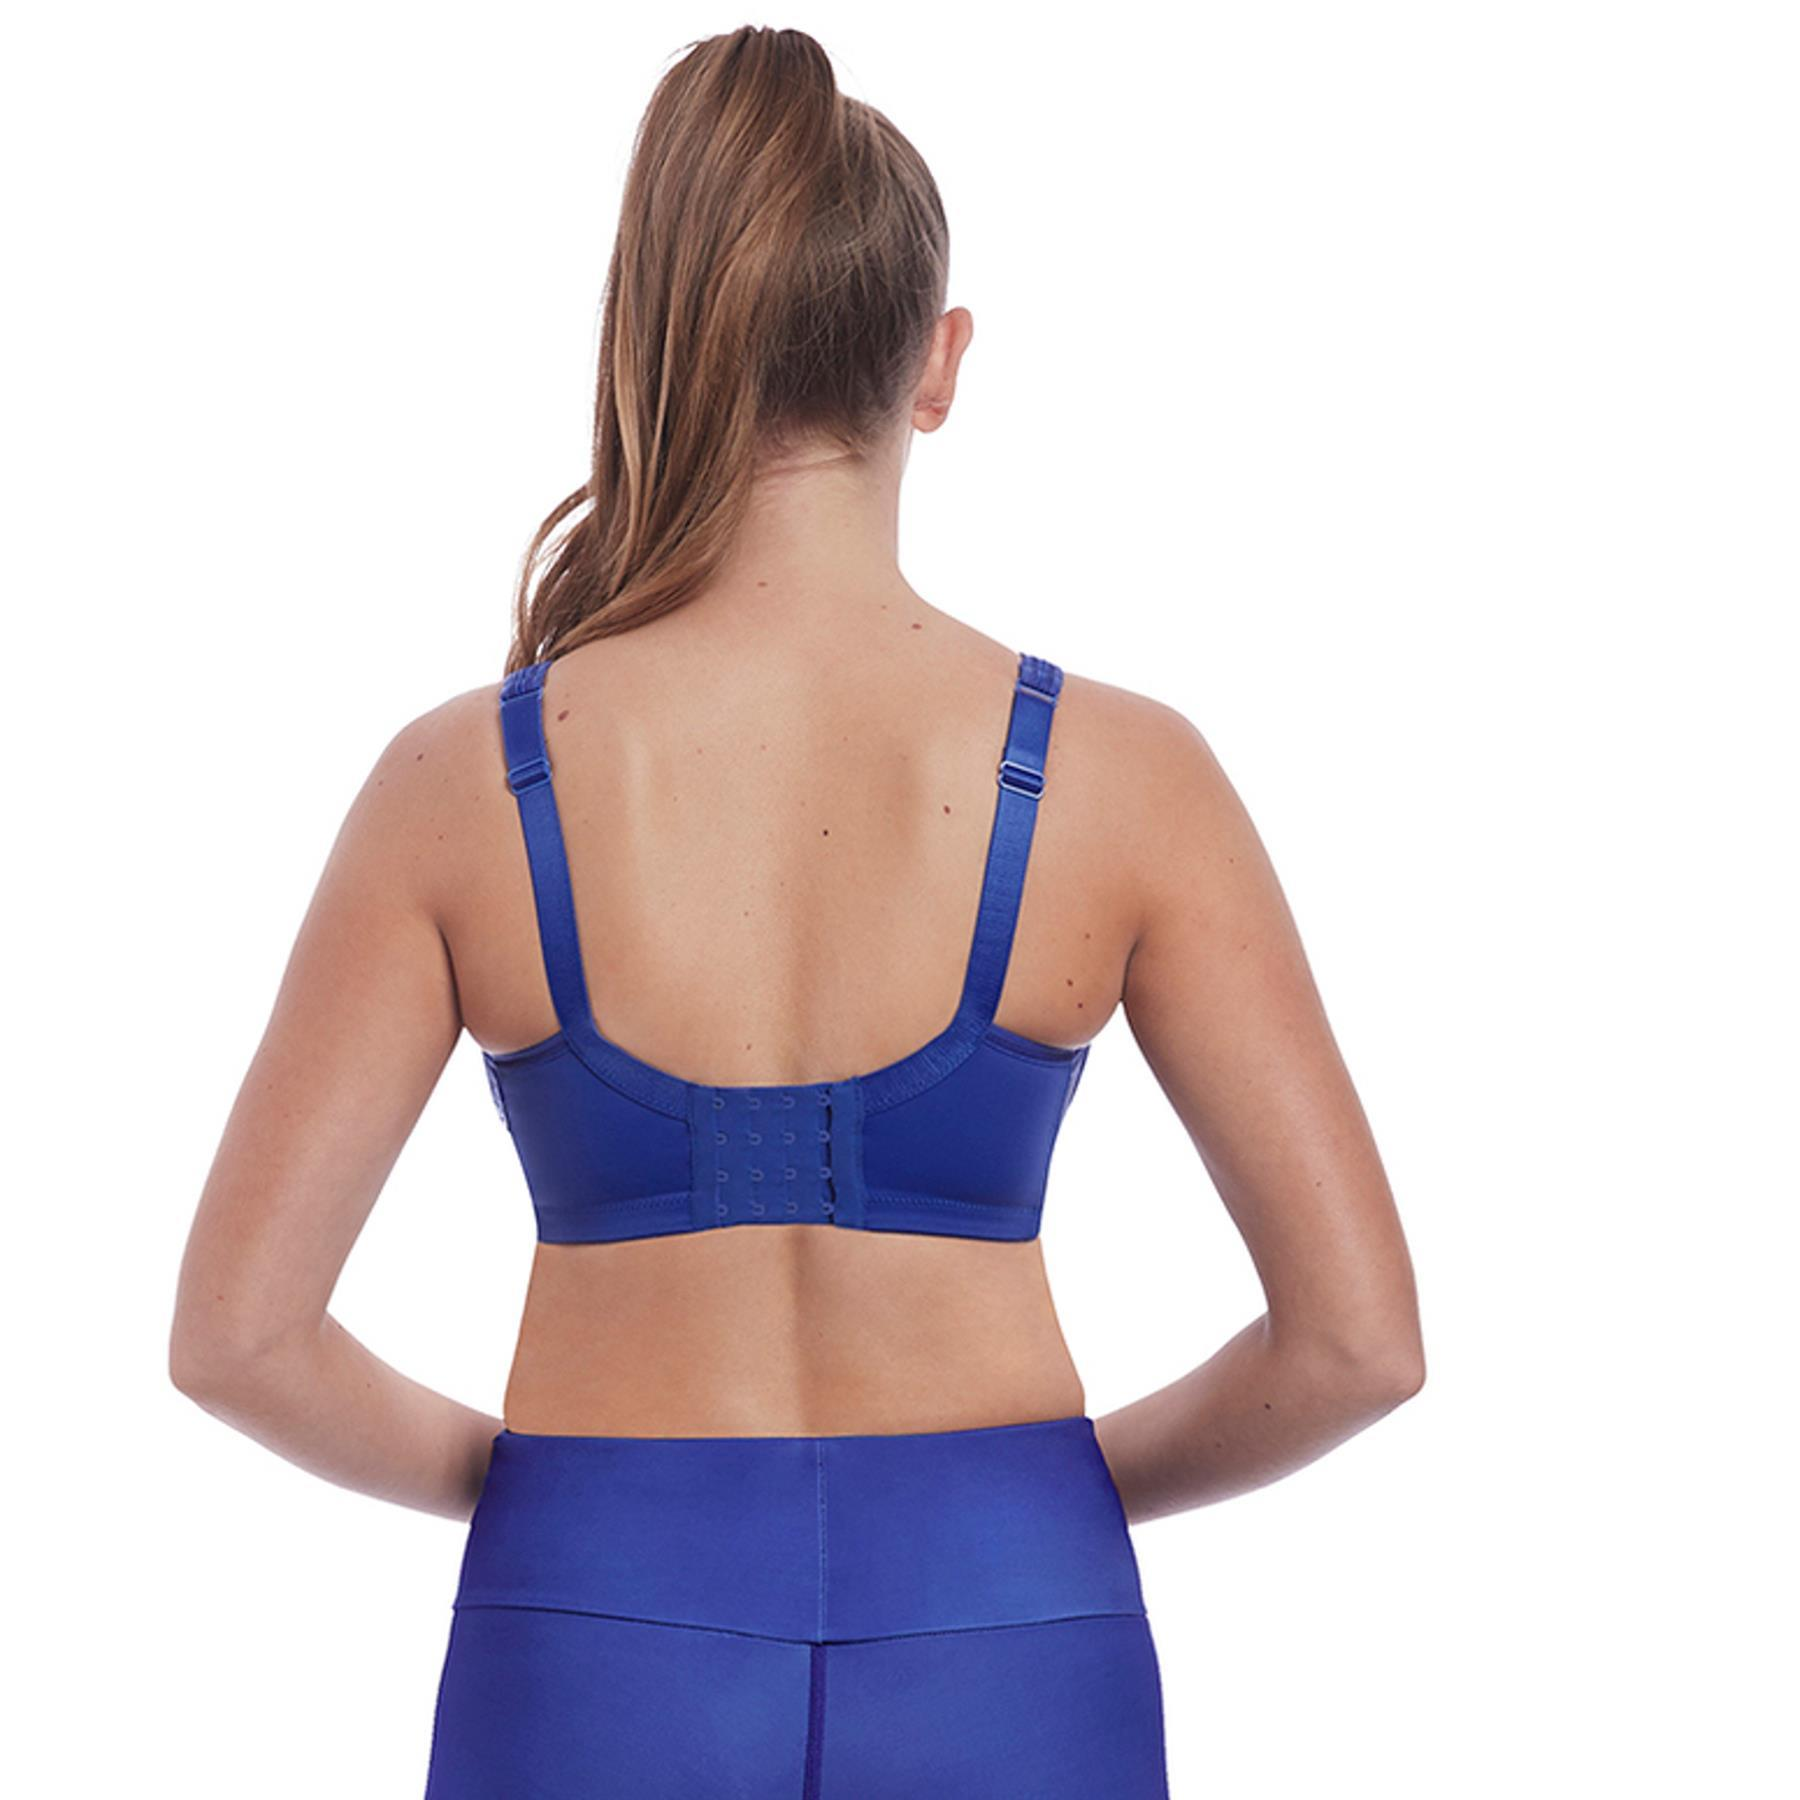 Freya Sports Bra Active Core Size 38FF Ocean Fever Blue Underwired Full Cup 4002